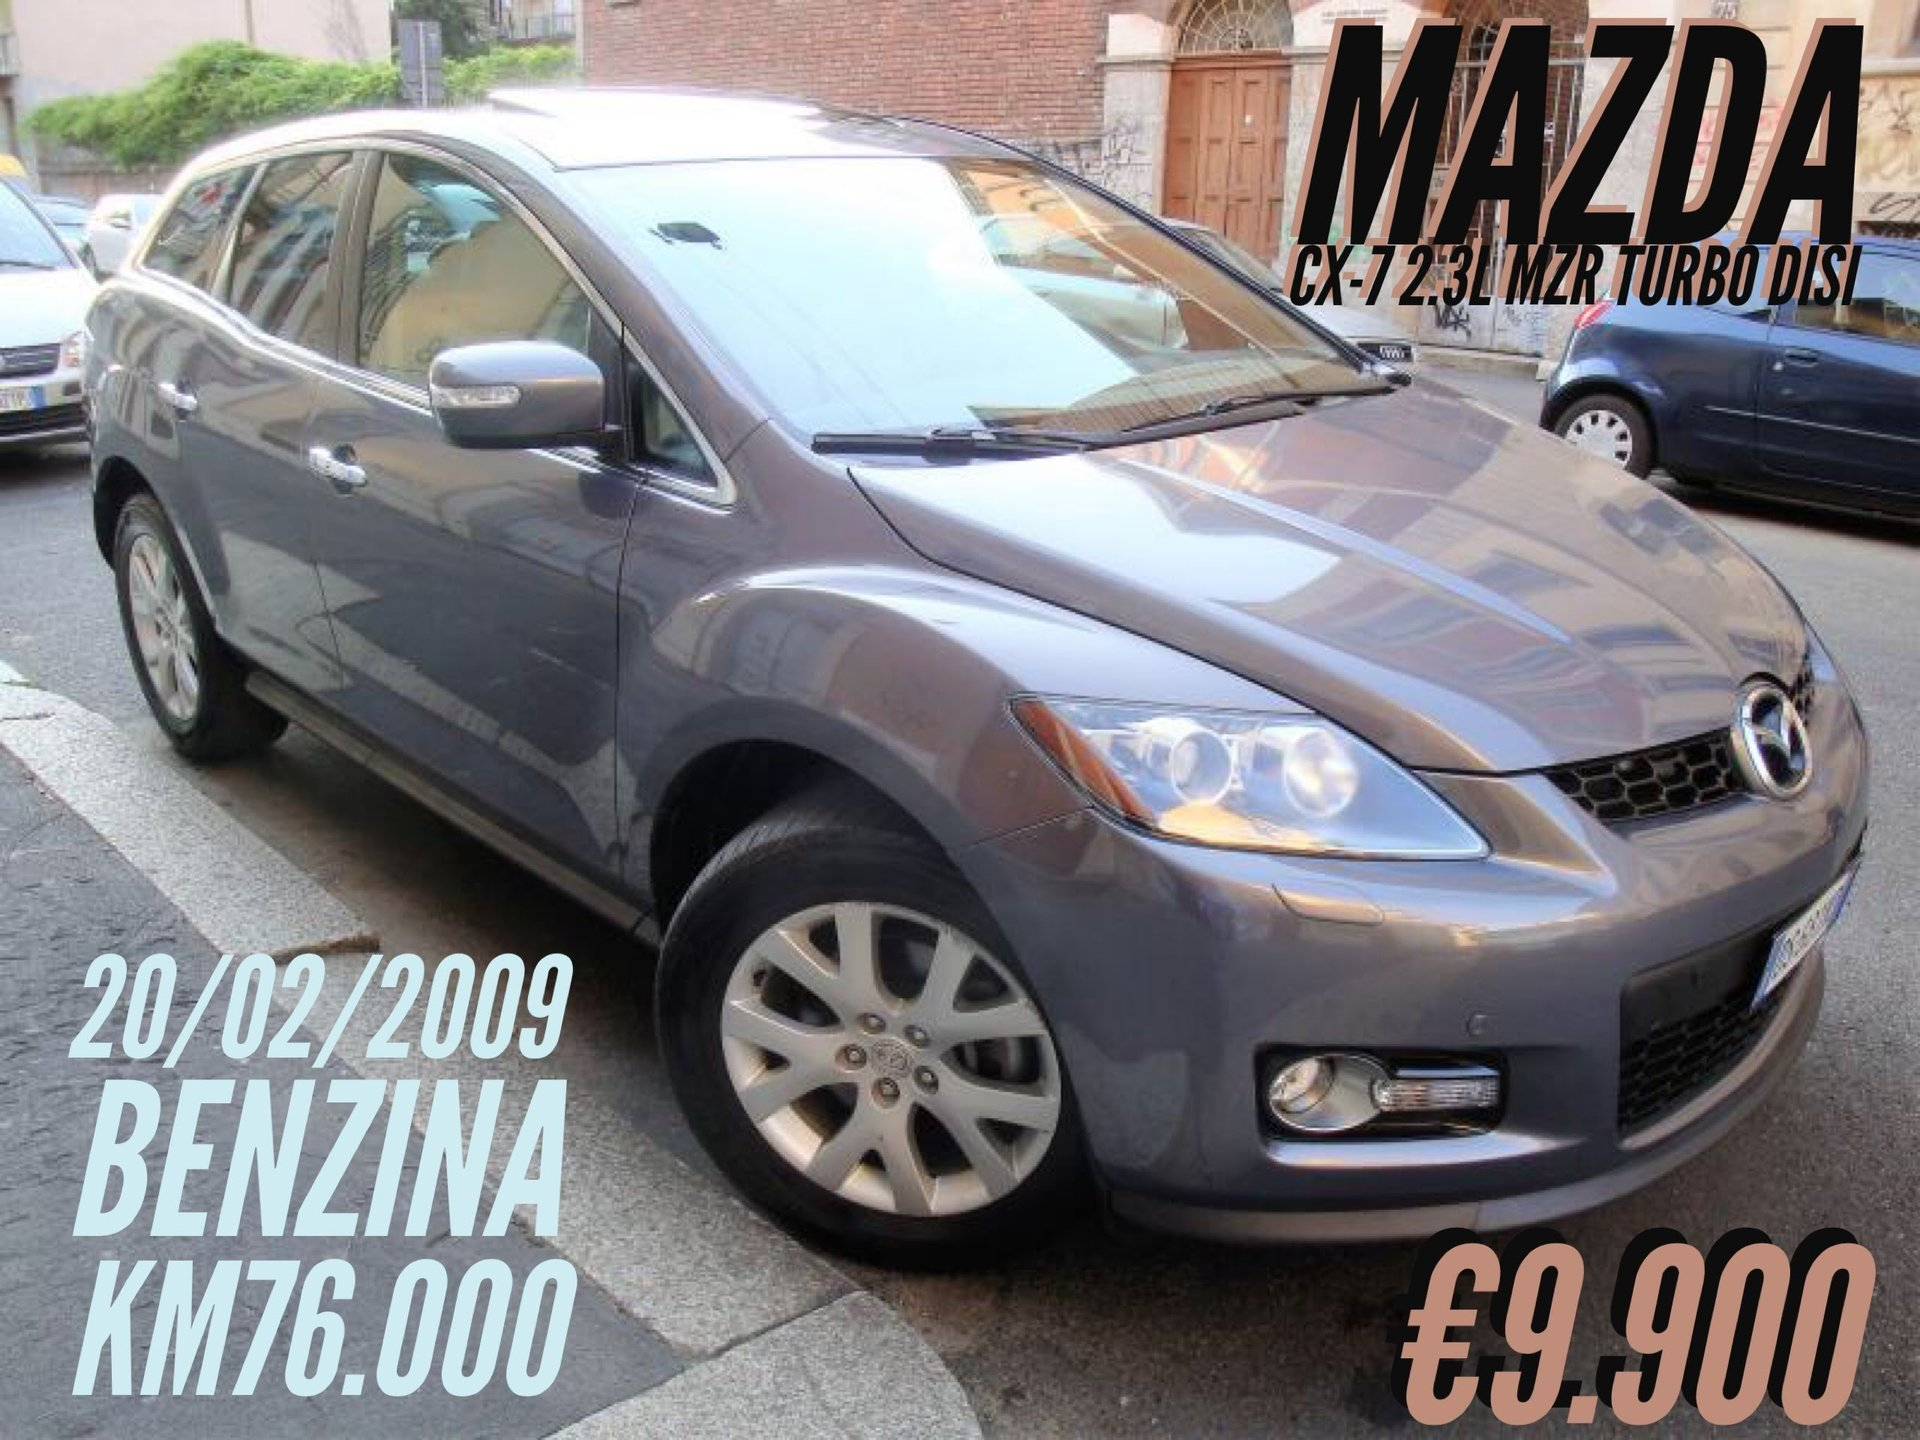 Mazda  CX-7 2.3L MZR Turbo DISI